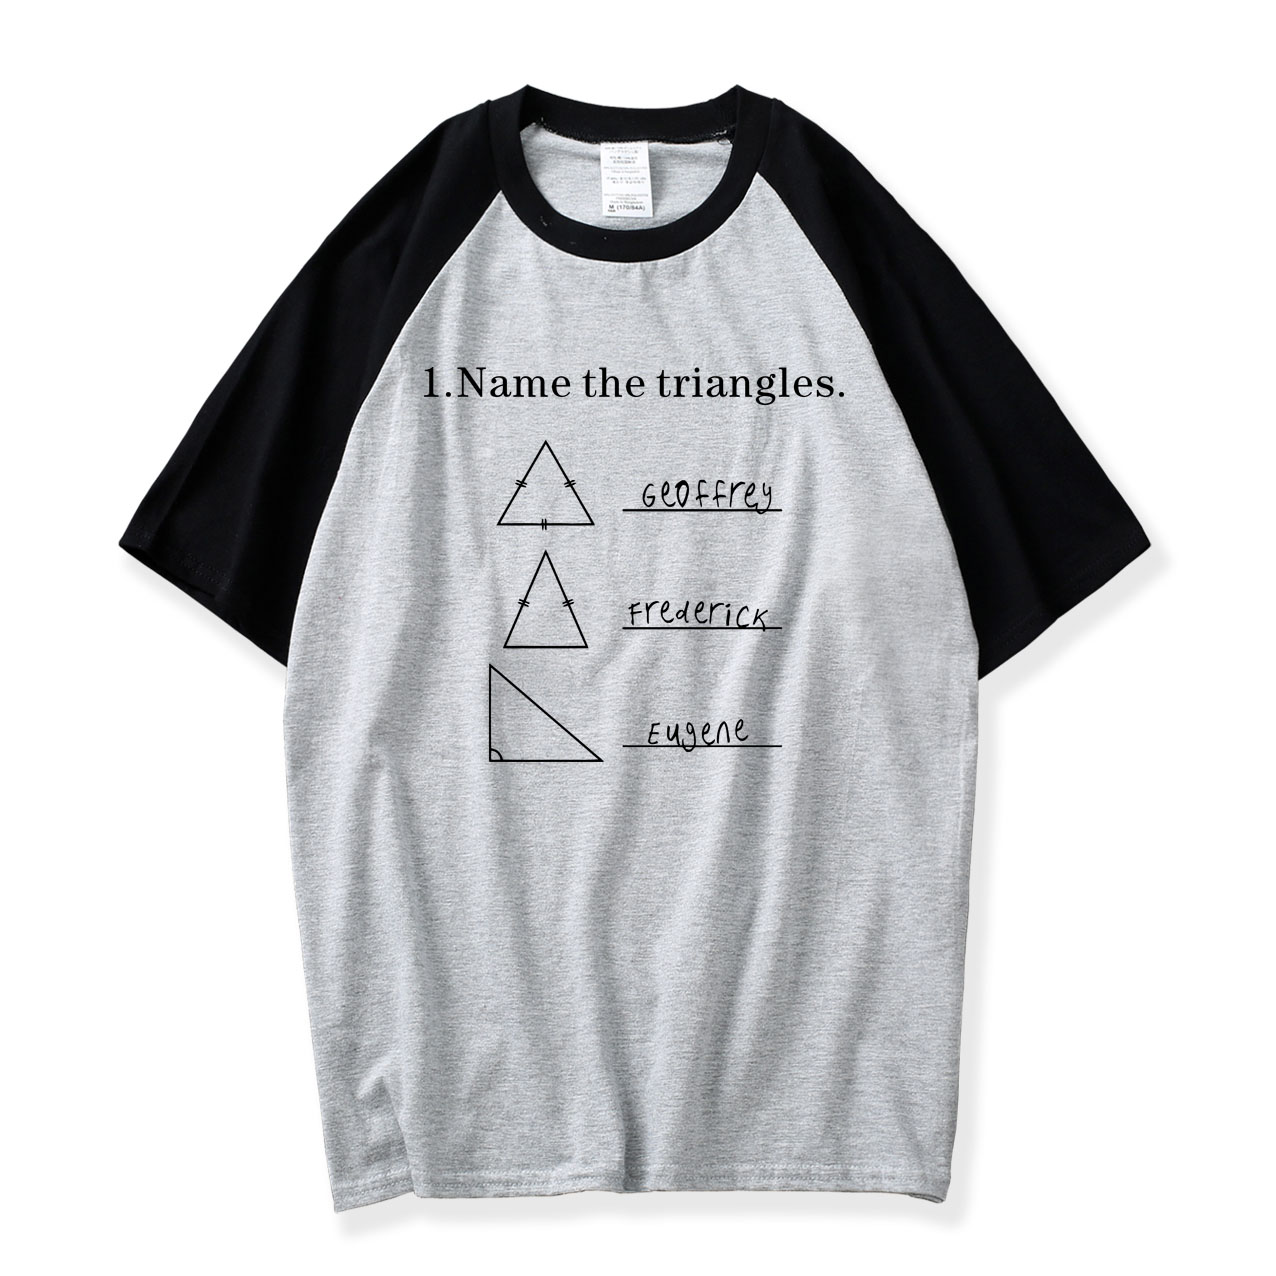 Science Know Sarcasm Men/'s T-shirt Funny tee